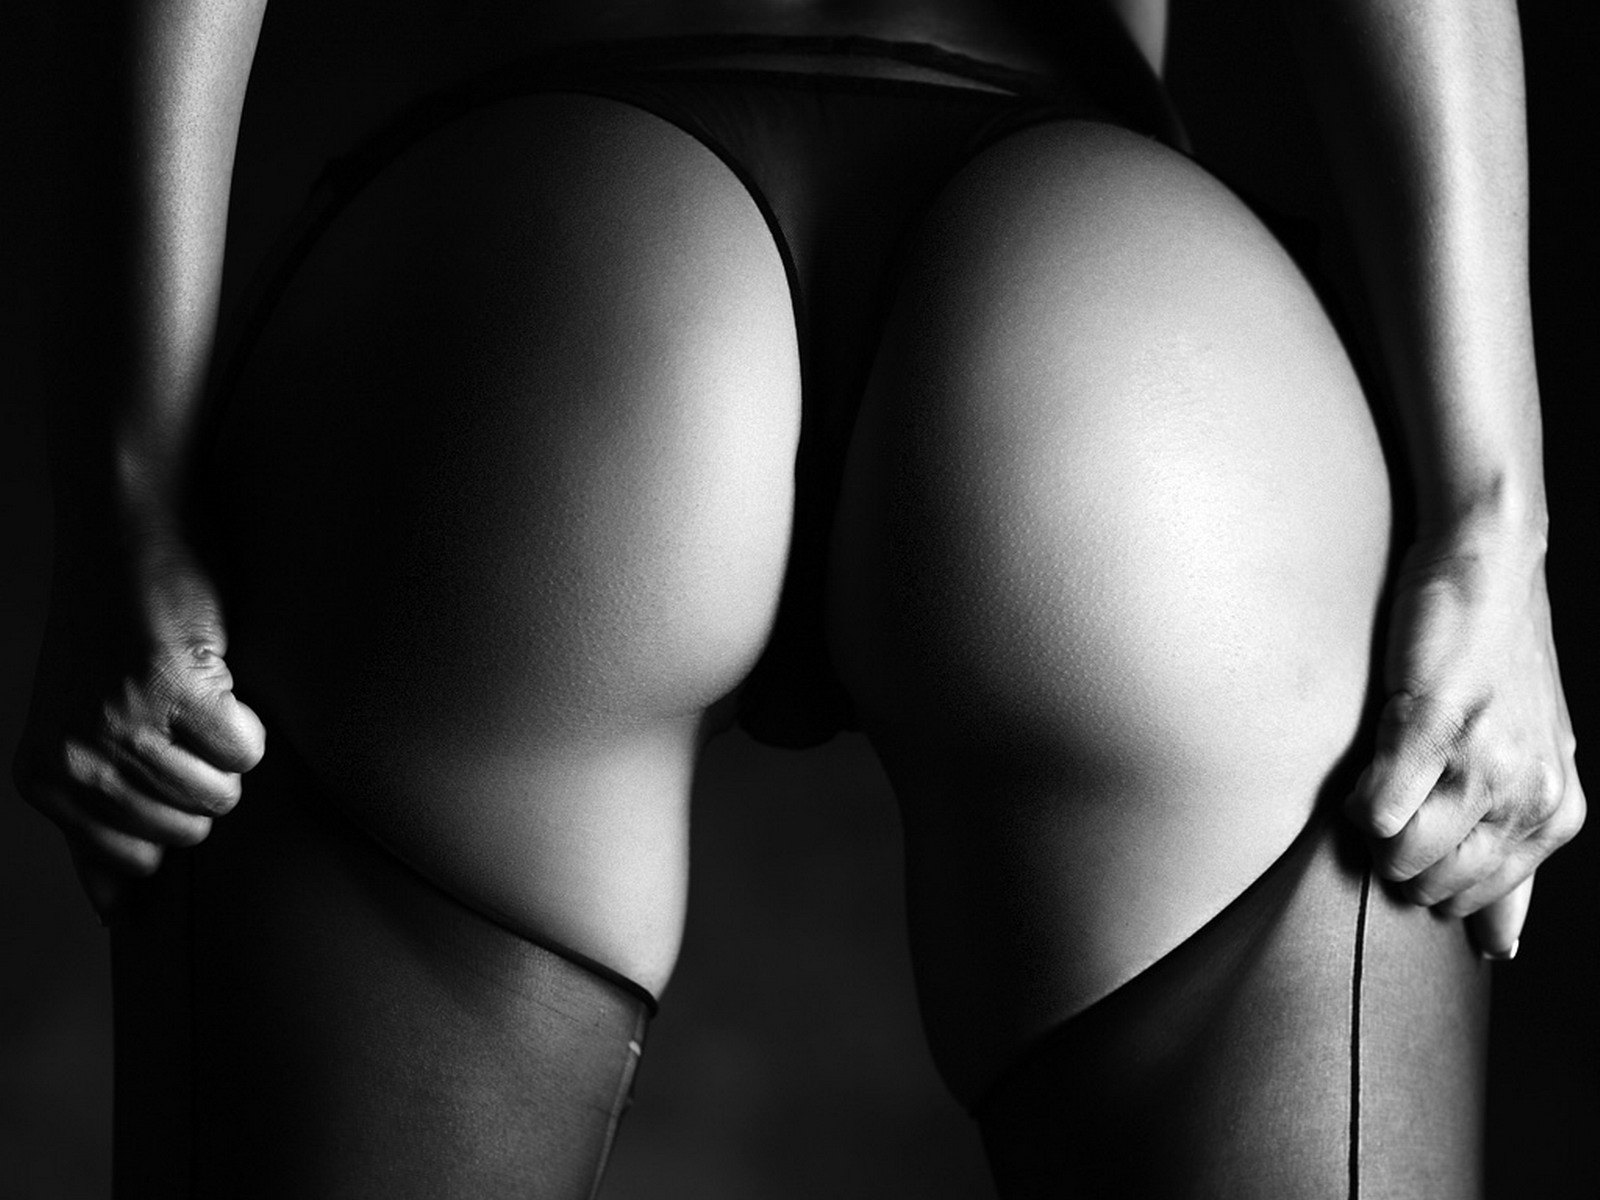 Фото Black and white, black panties, nice ass, girl pulls black stockings, скачать картинку бесплатно